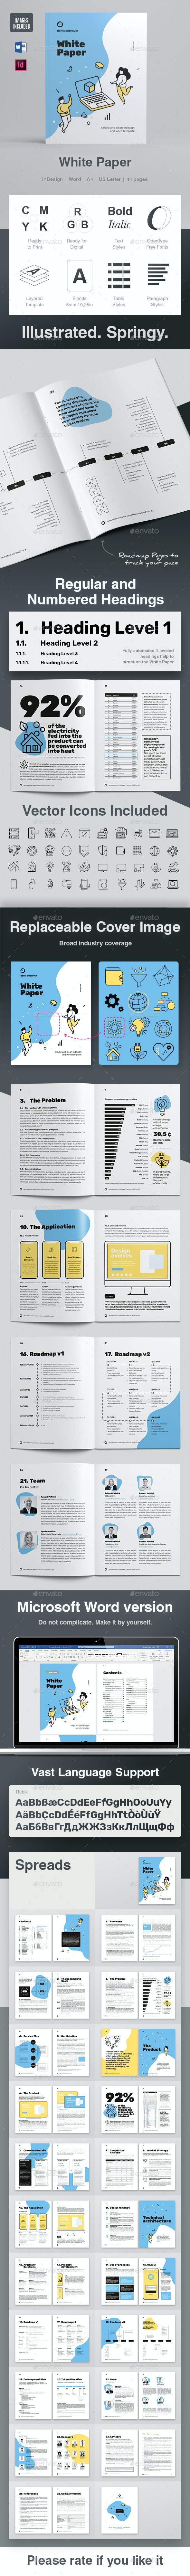 White Paper Illustrated